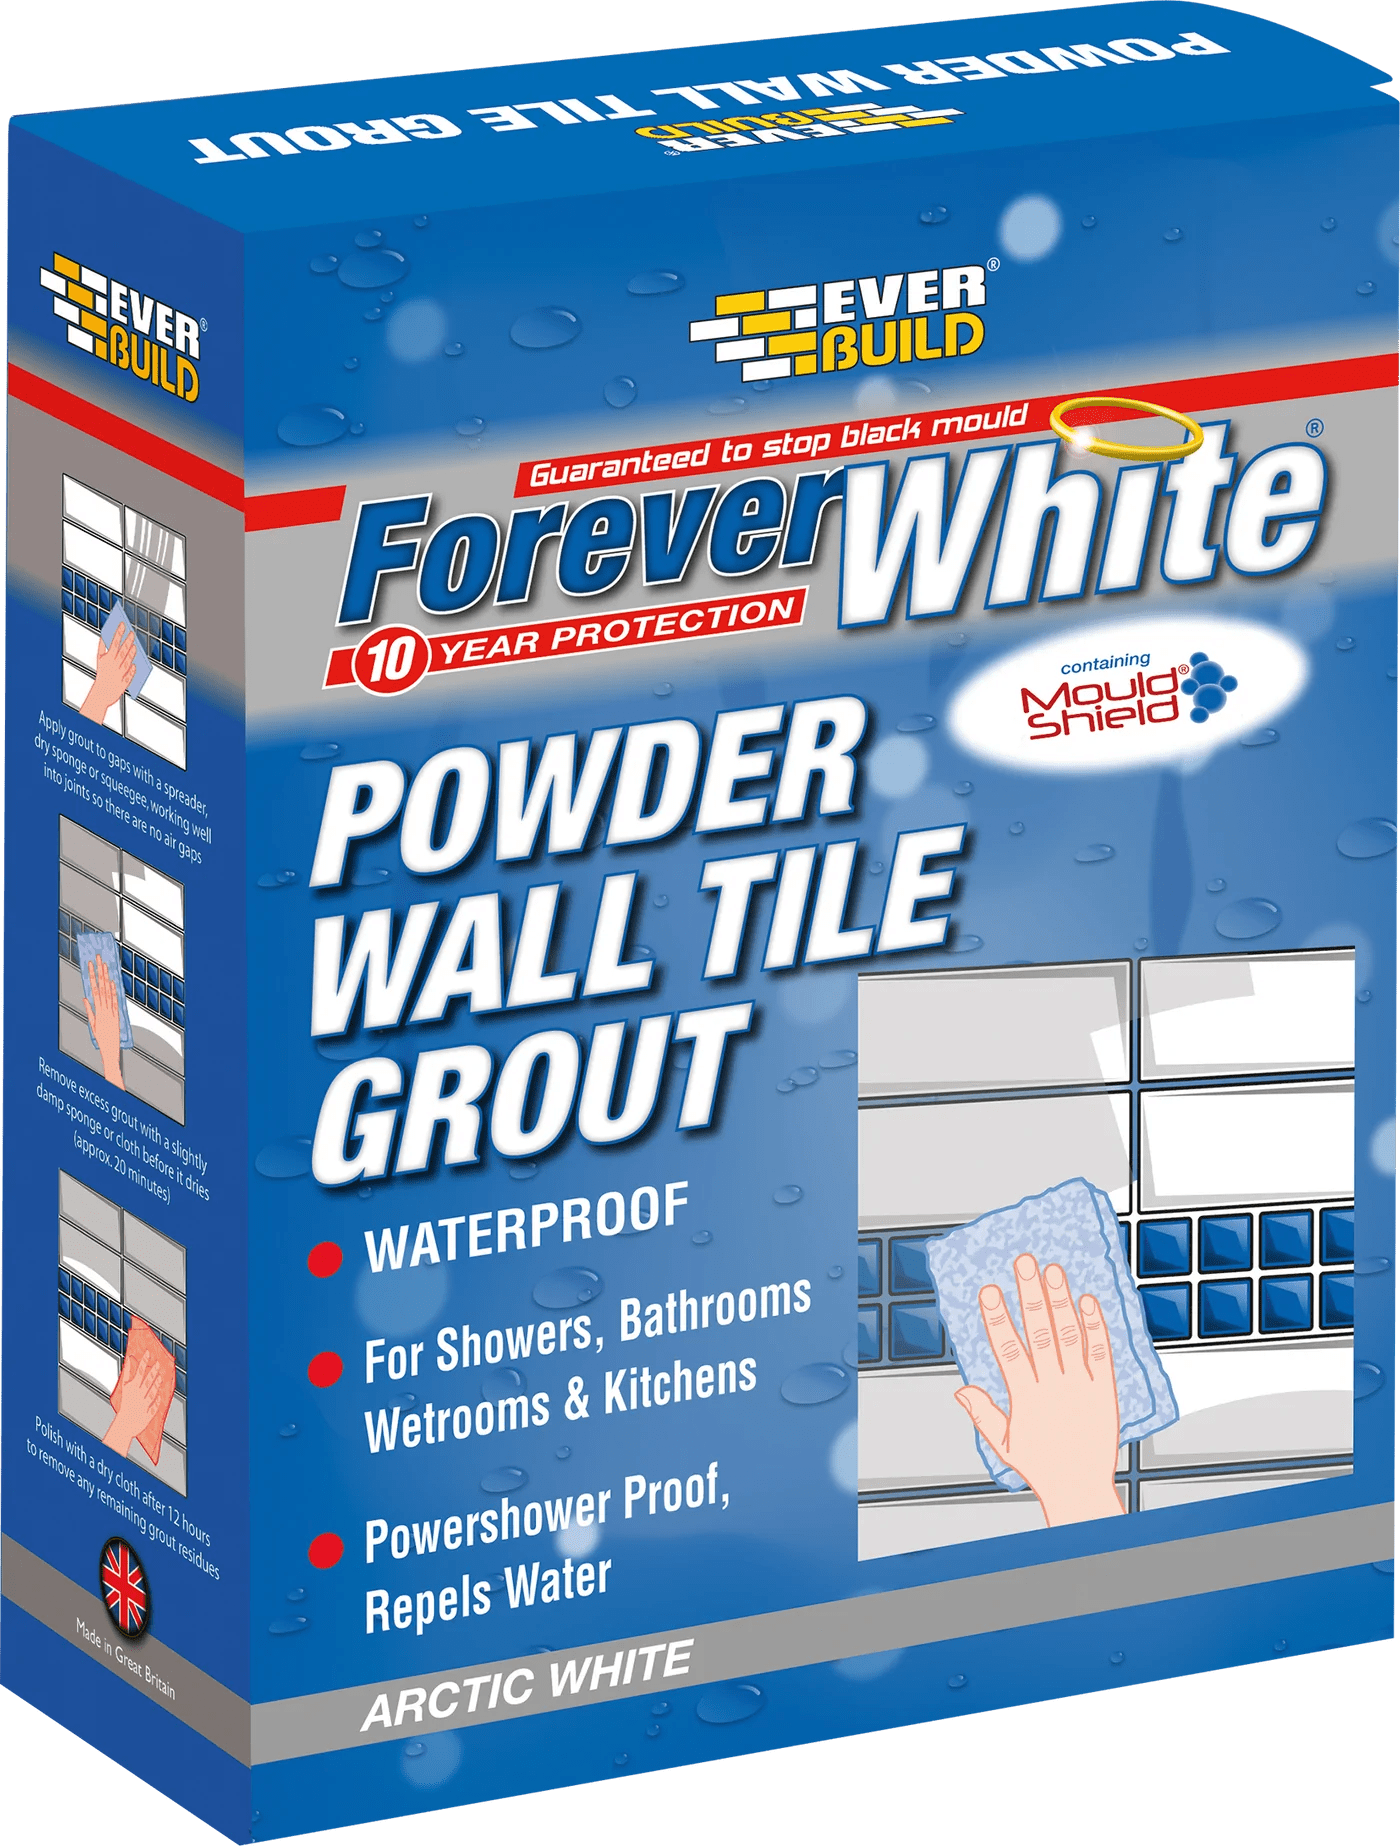 forever white powder wall tile grout arctic white 1 2kg